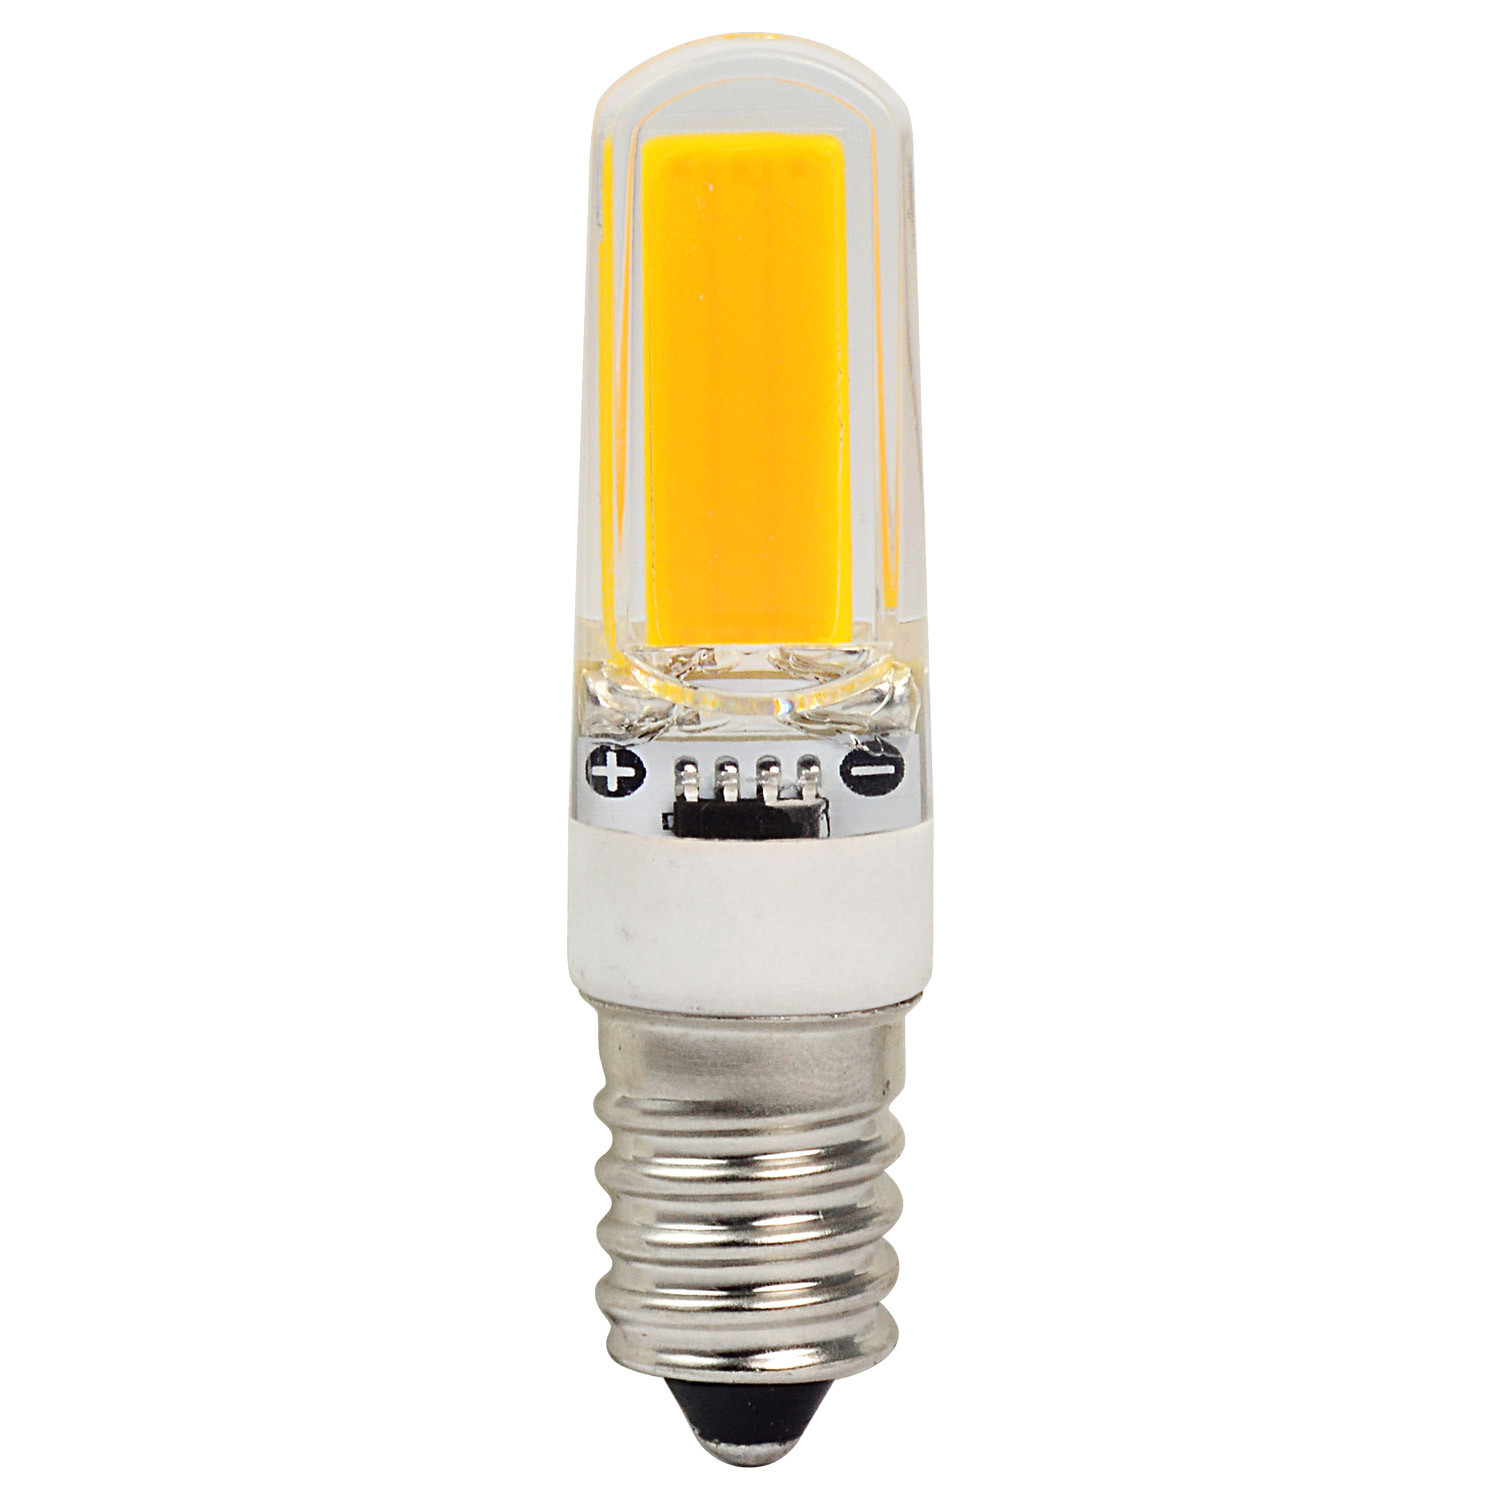 MENGS® E14 3W LED Light COB LED Bulb Lamp In Warm White Energy-Saving Light